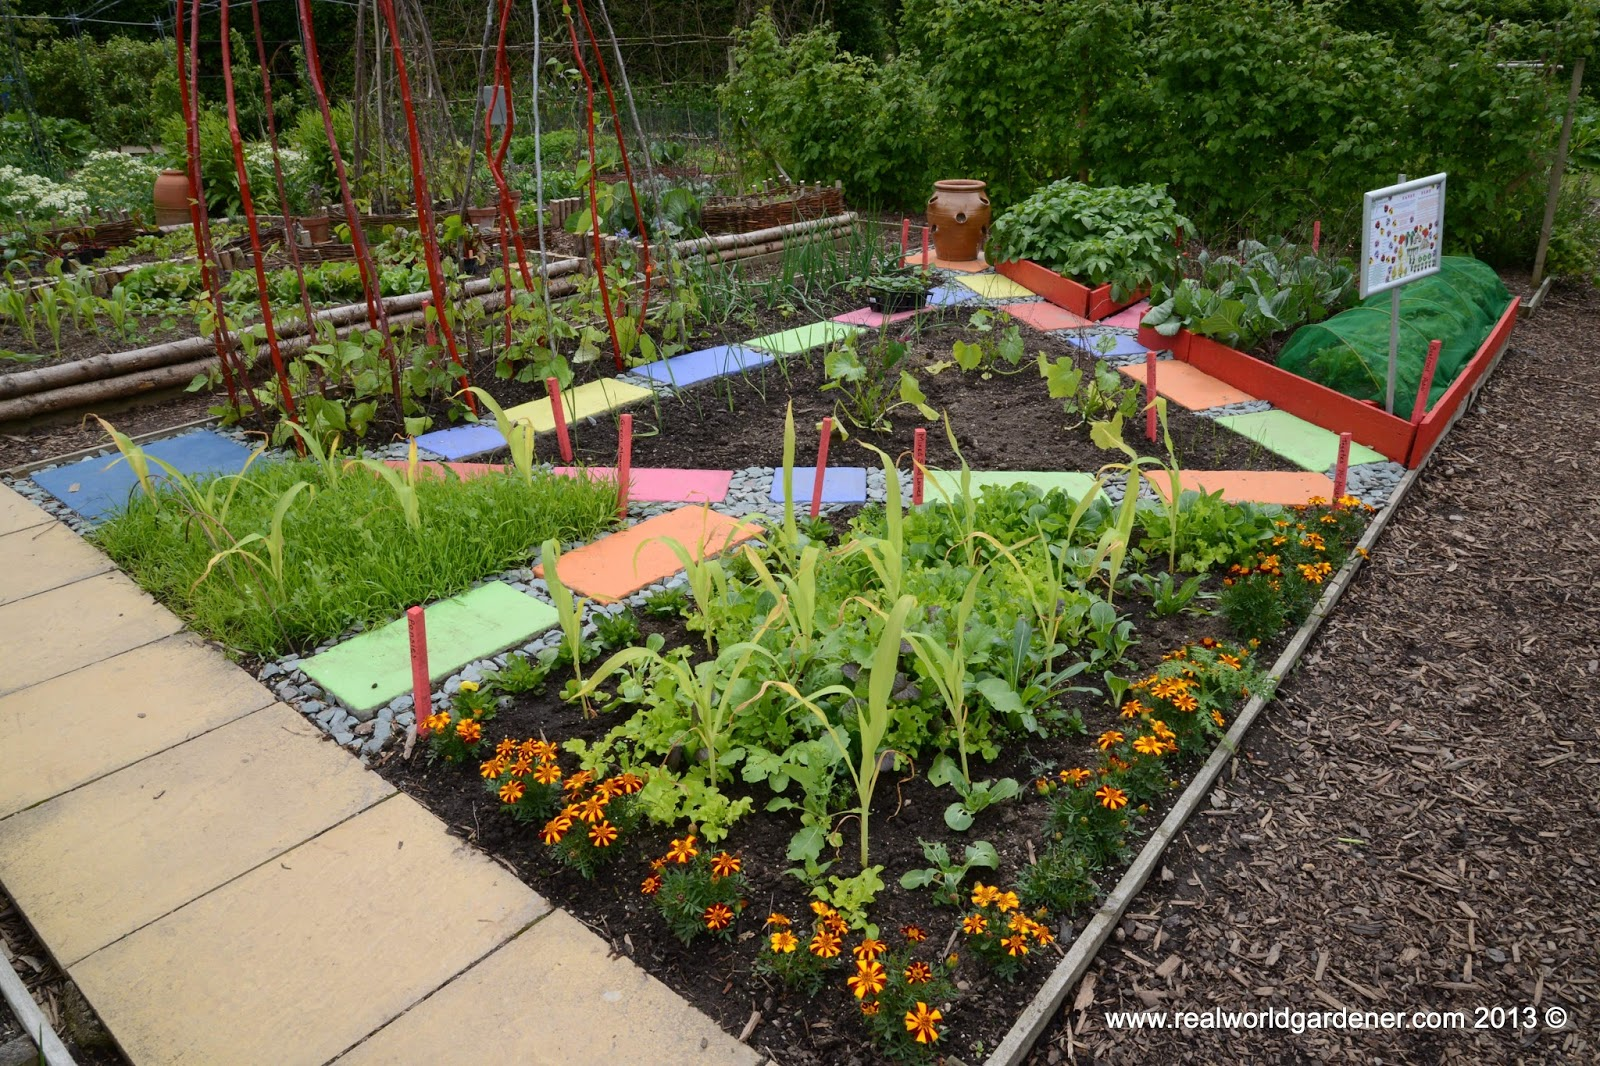 real world gardener perma gardening good for the earth